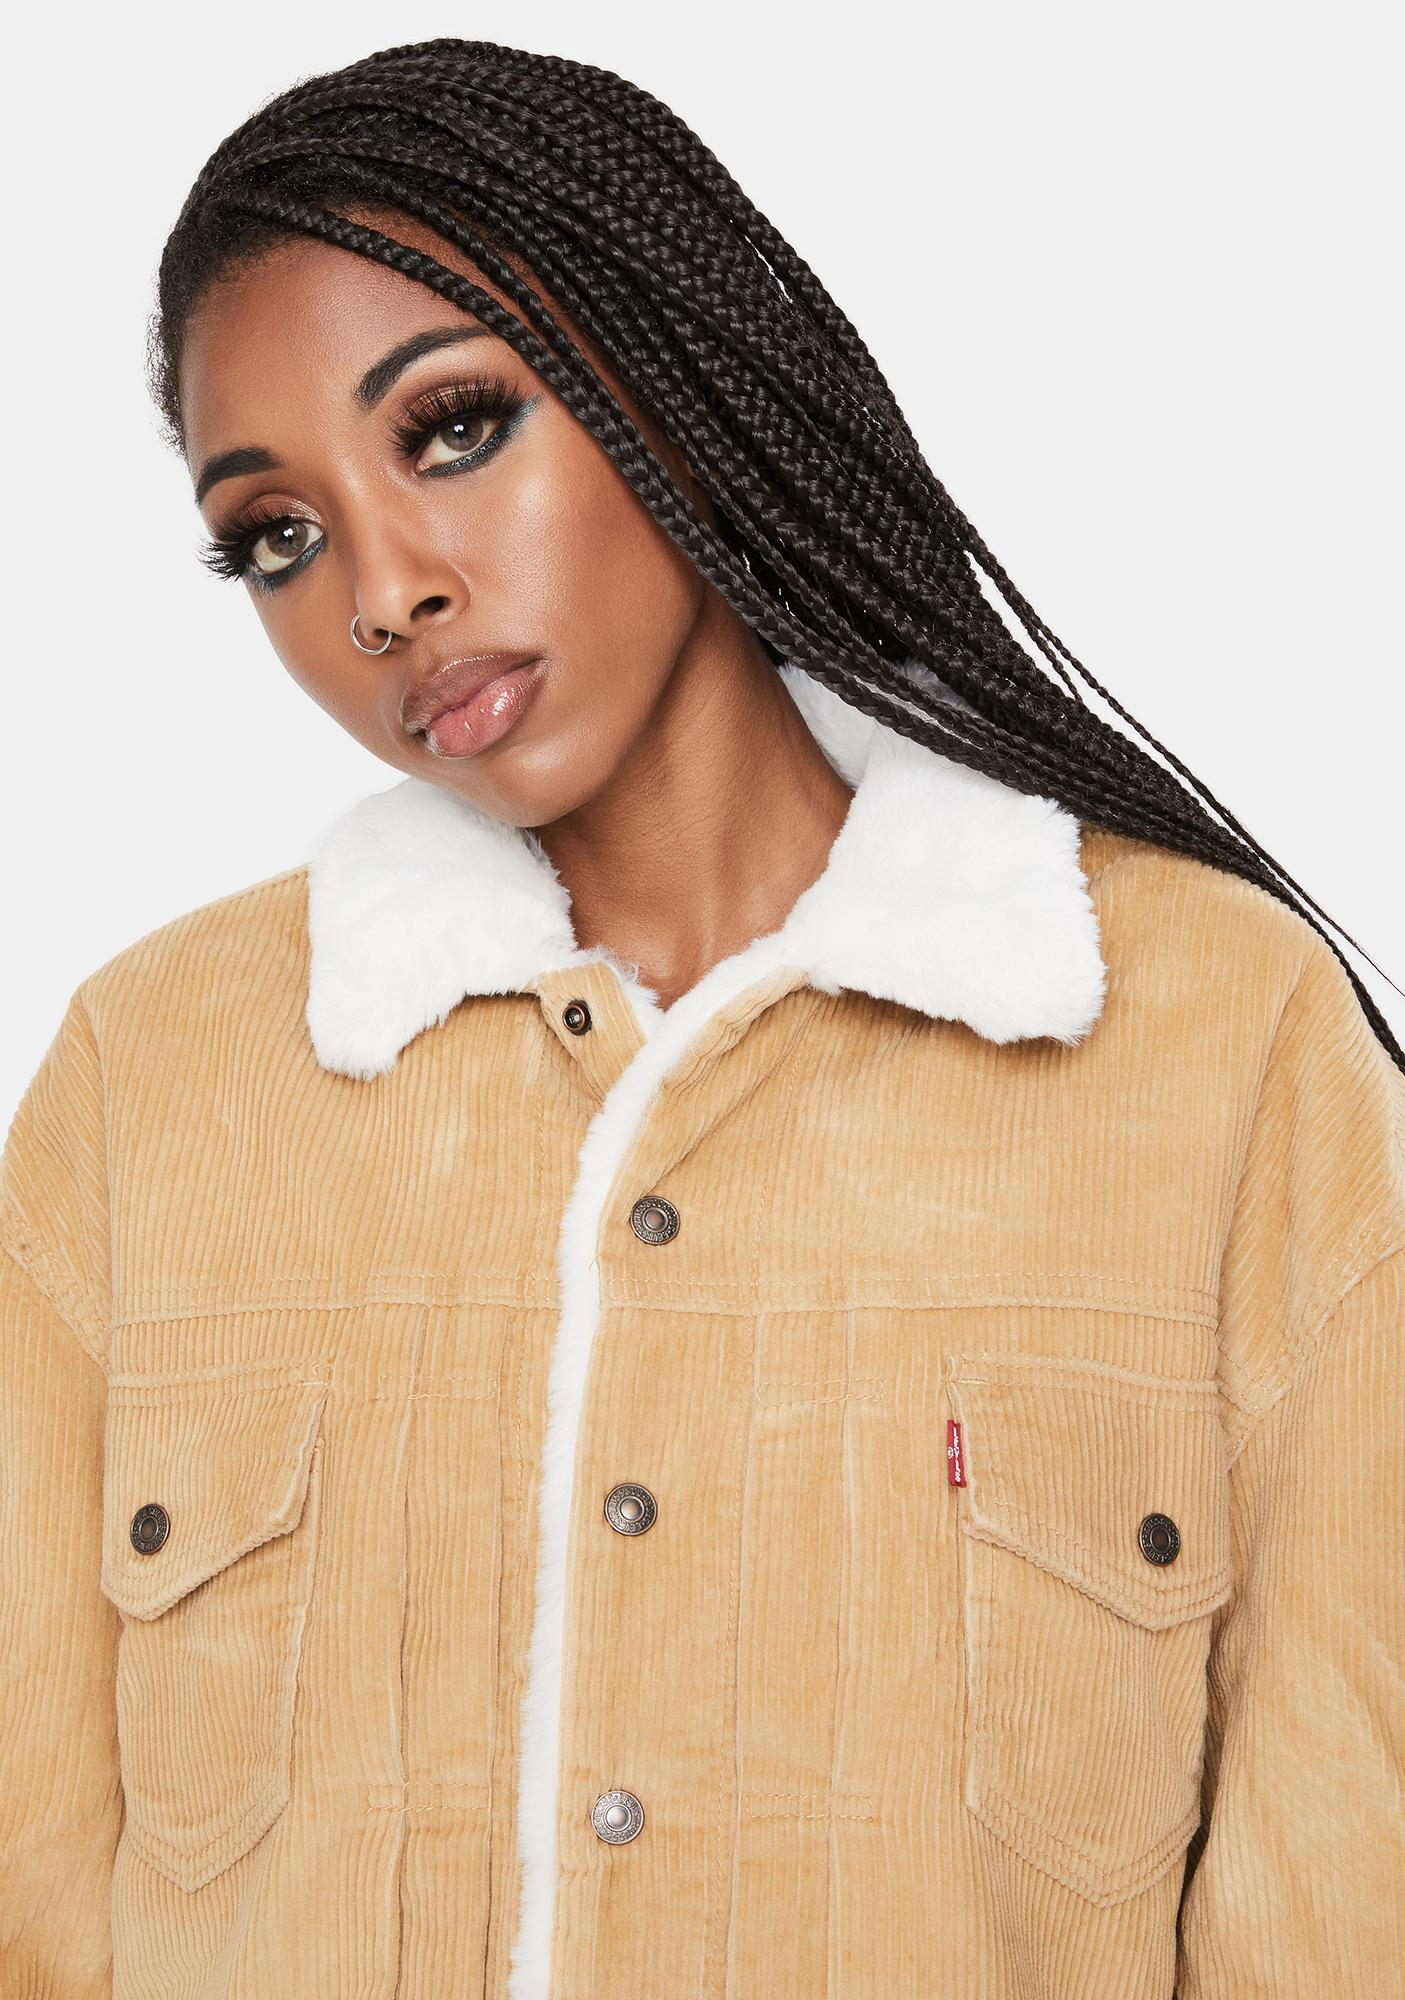 Levis Iced Coffee New Heritage Cord Trucker Jacket